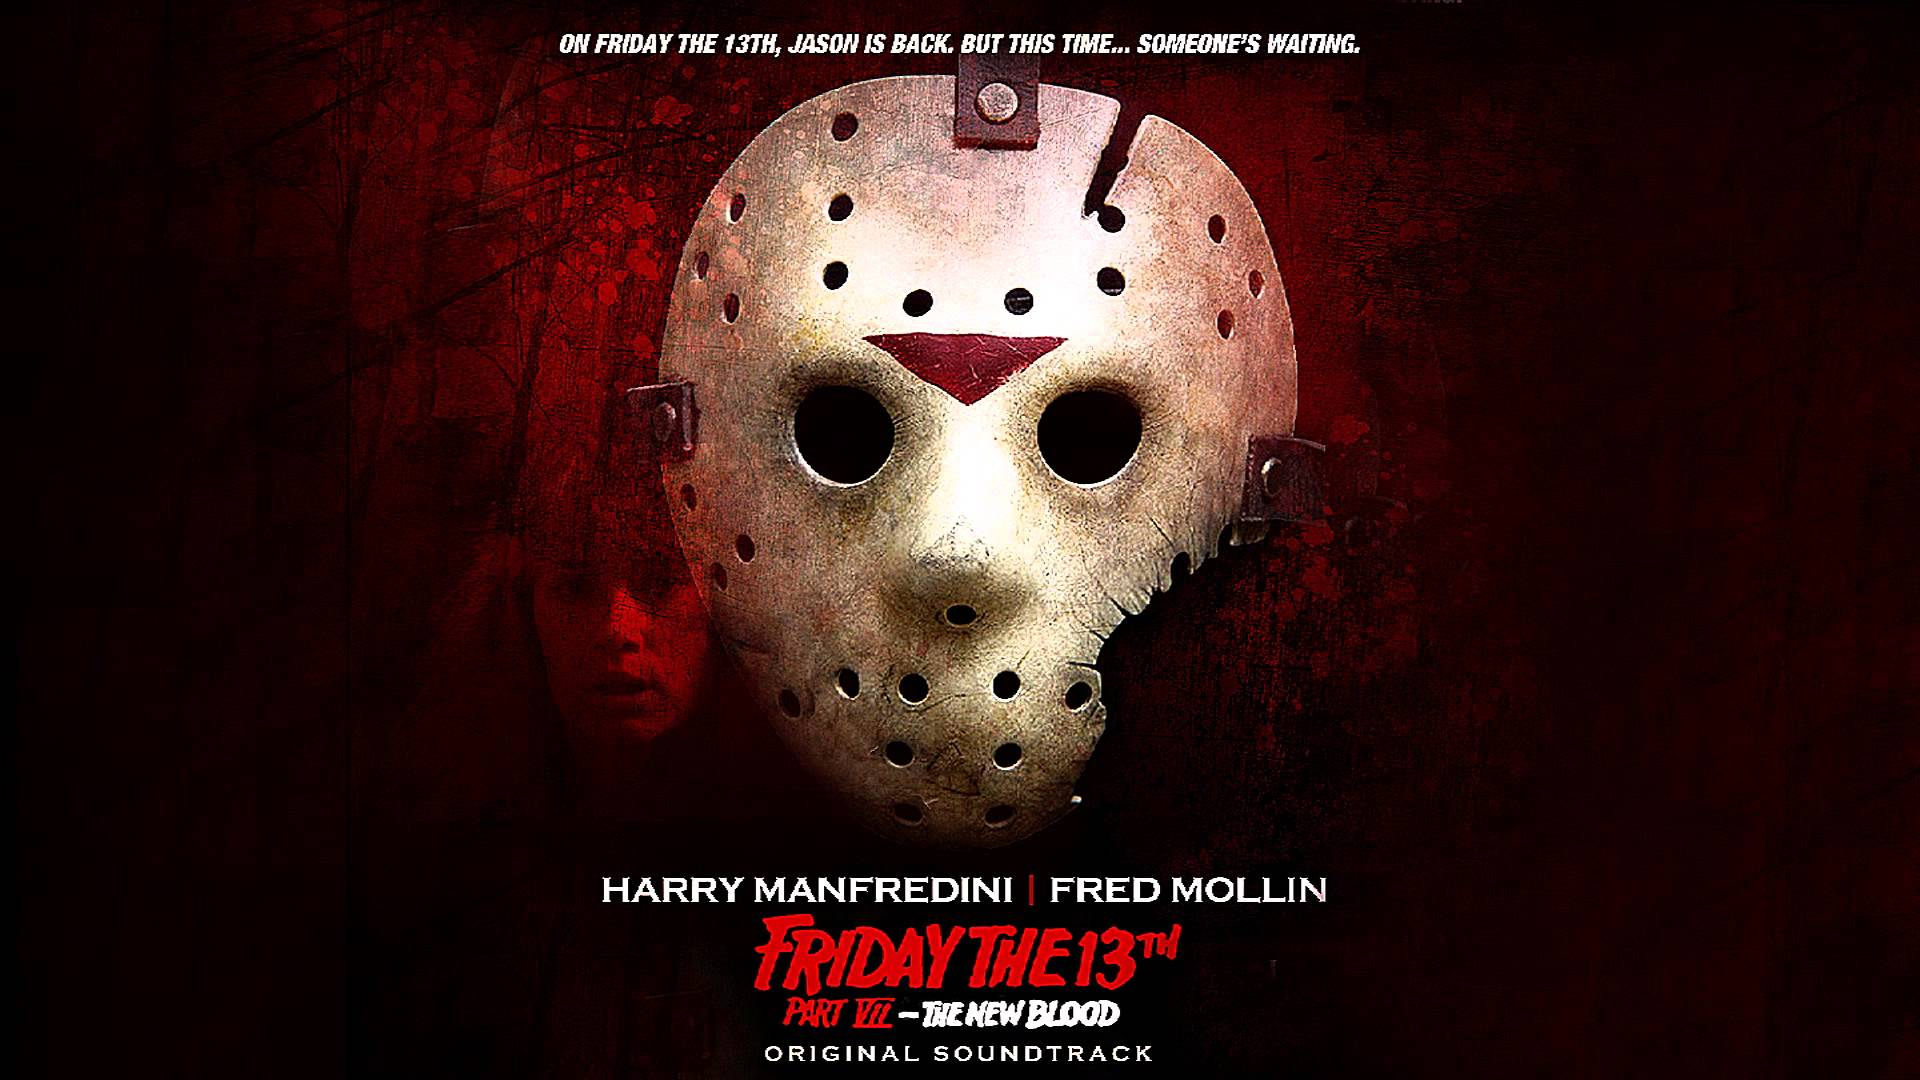 Friday The 13th Iphone Wallpaper Friday The 13th Part Vii The New Blood 1988 Hd Wallpaper